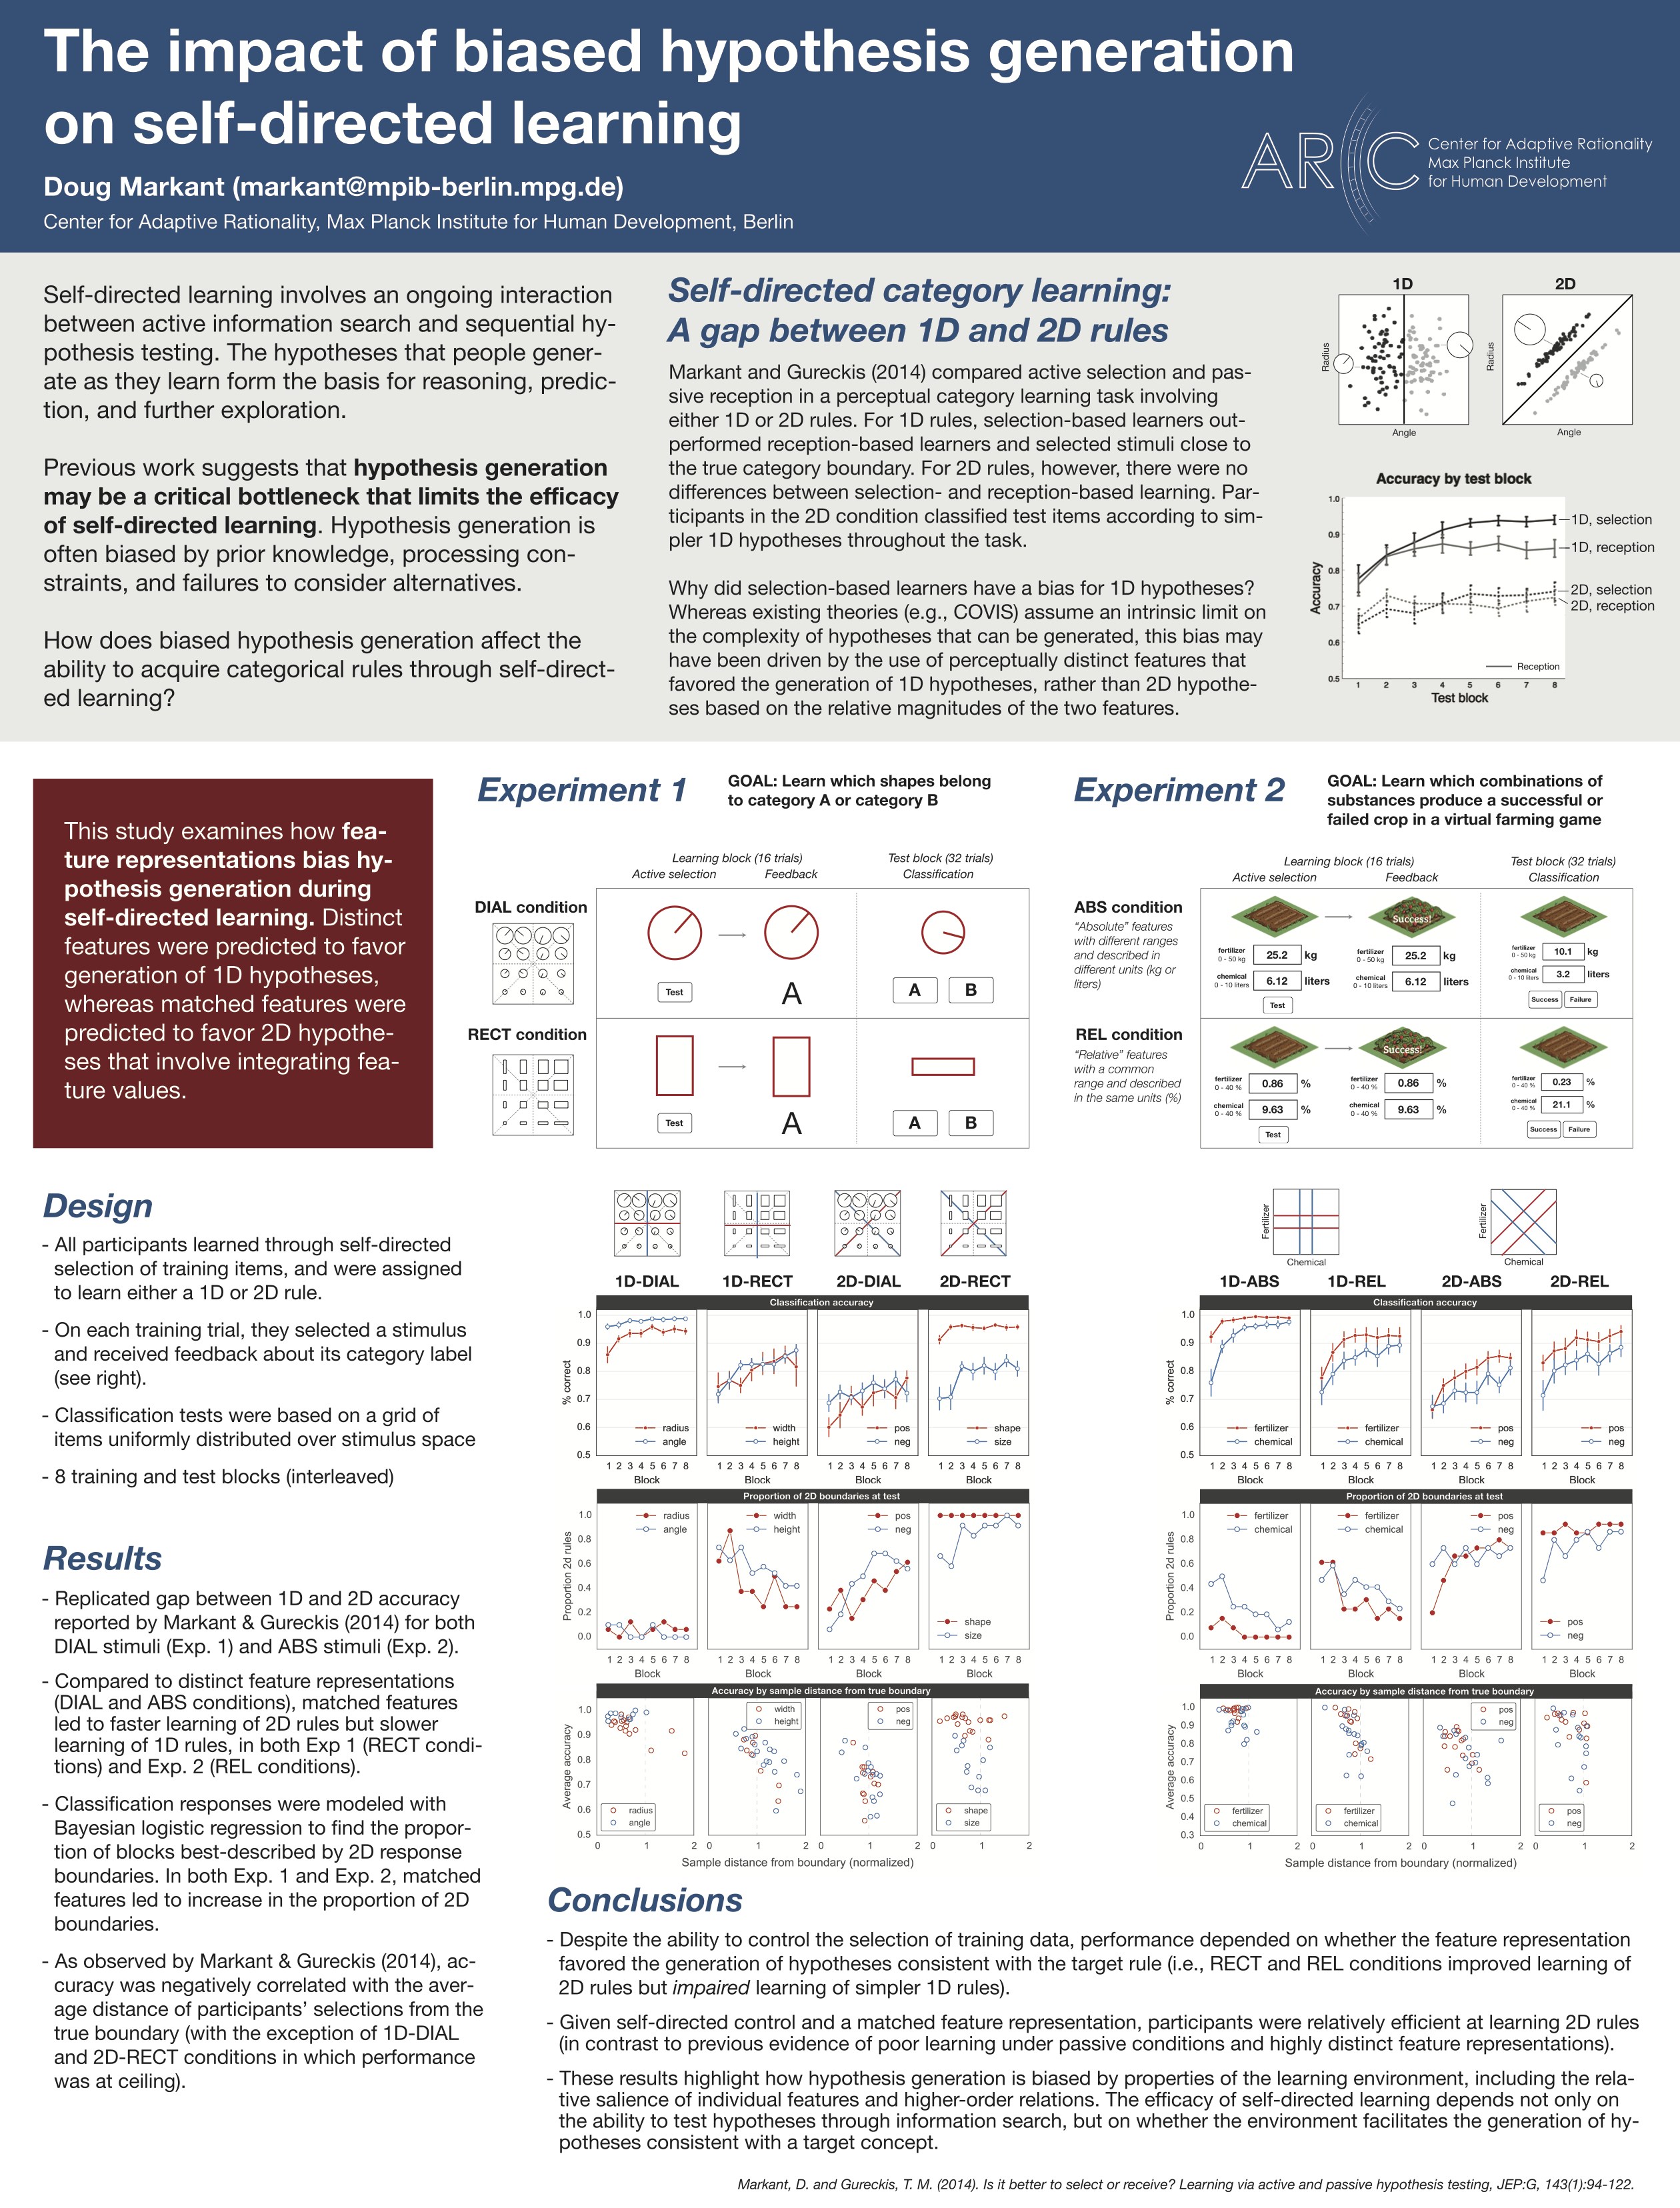 cogsci-poster